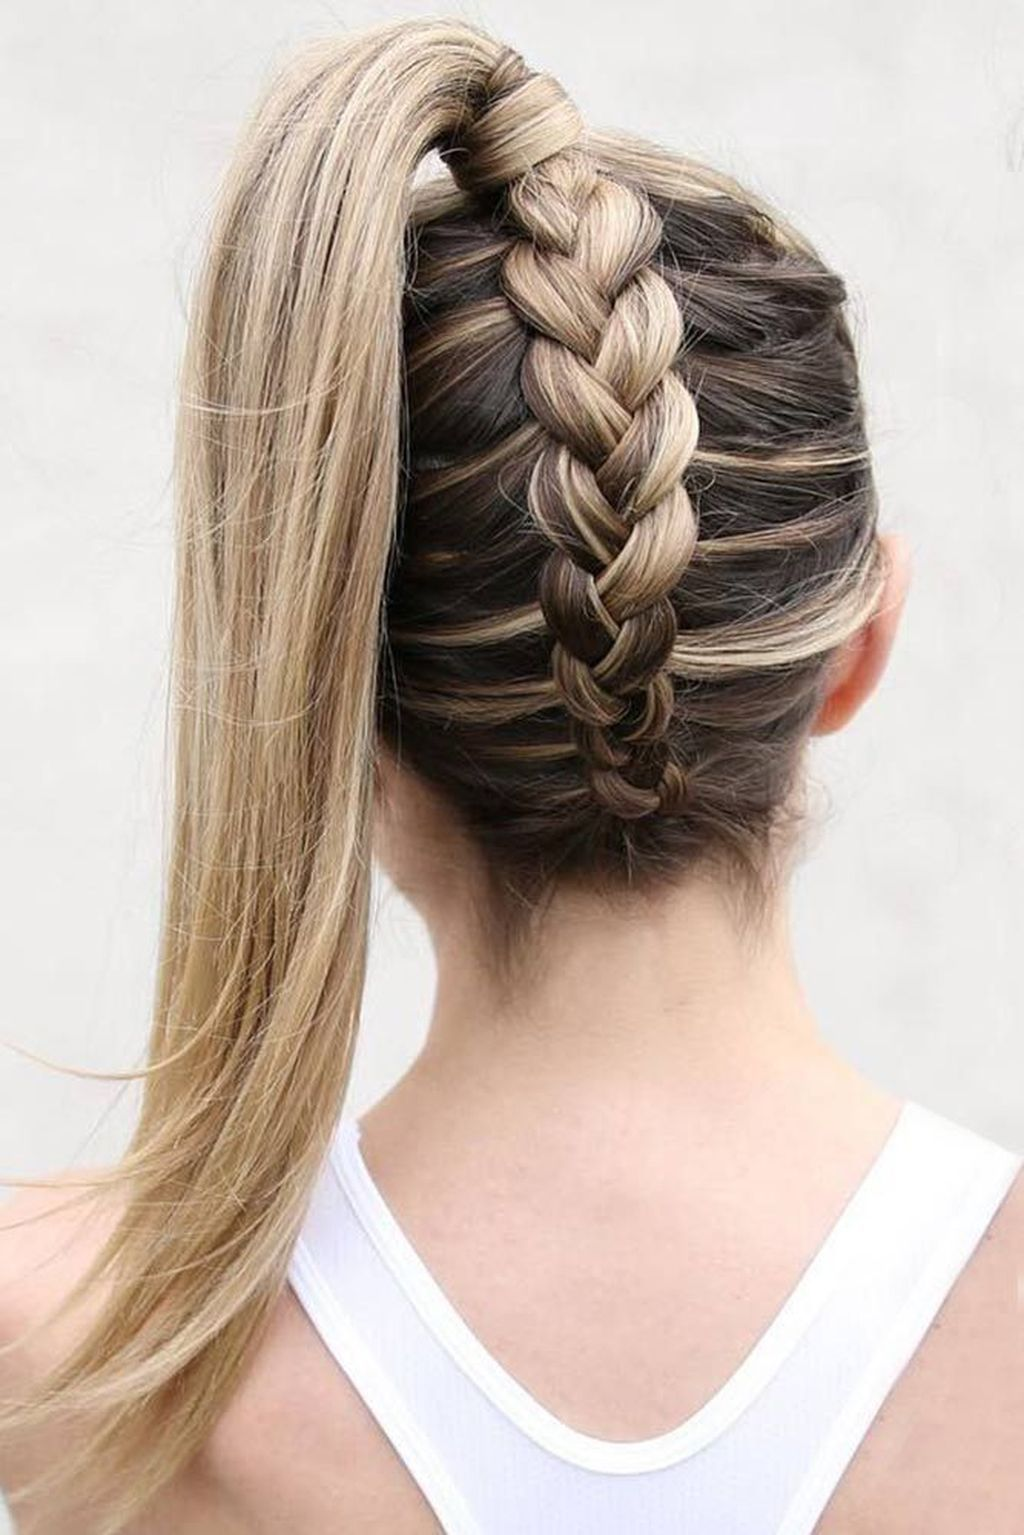 1582617302 264 30 Braids Hairstyles 2020 for Ultra Stylish Looks